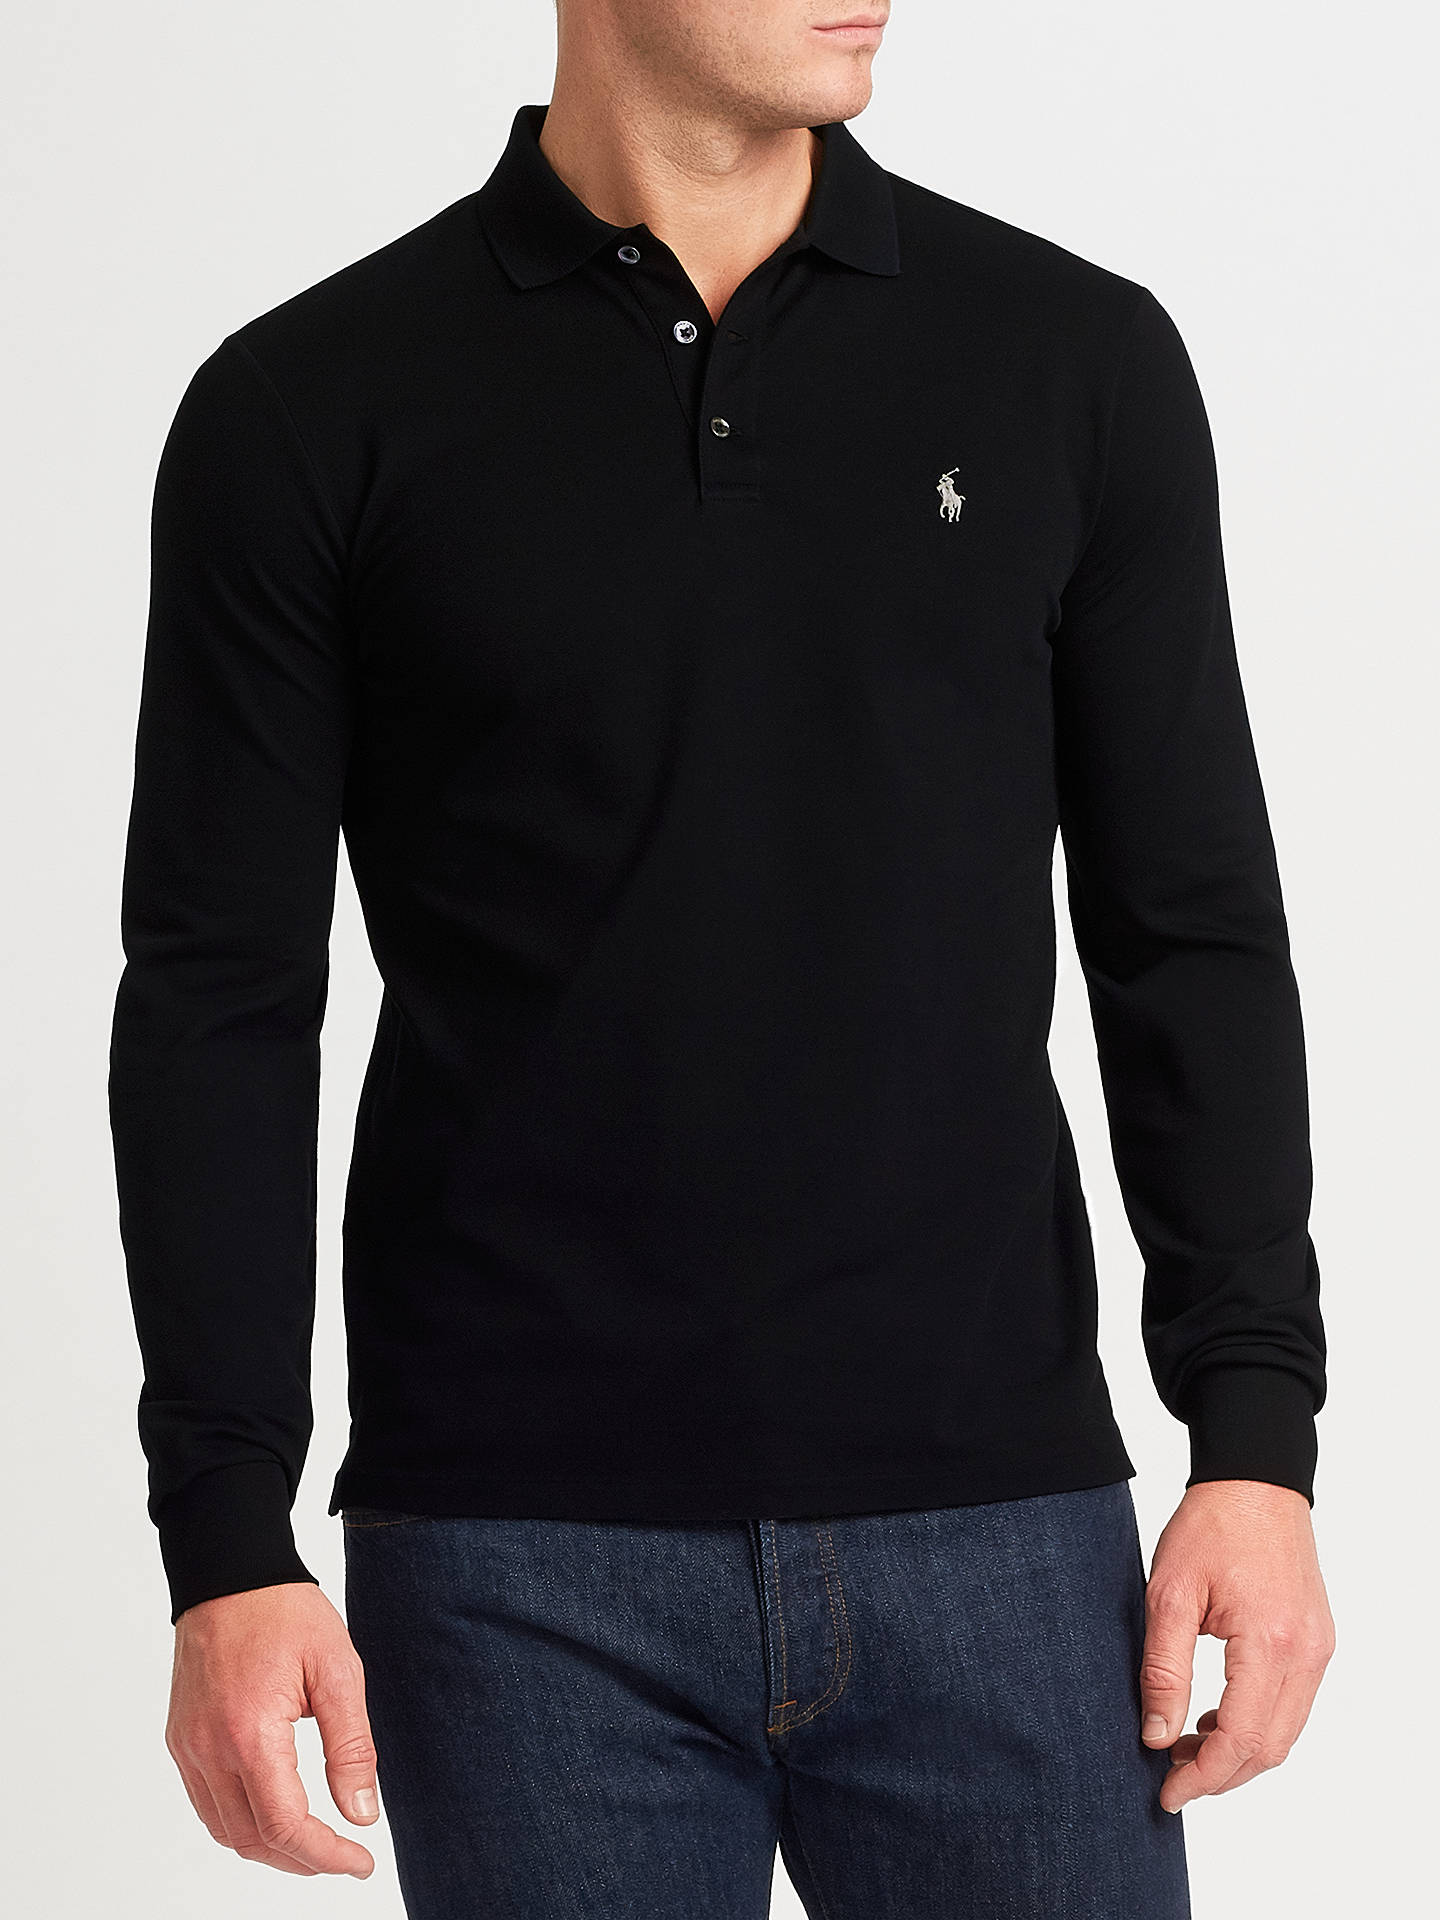 Polo Ralph Lauren Long Sleeve Polo Top At John Lewis Partners